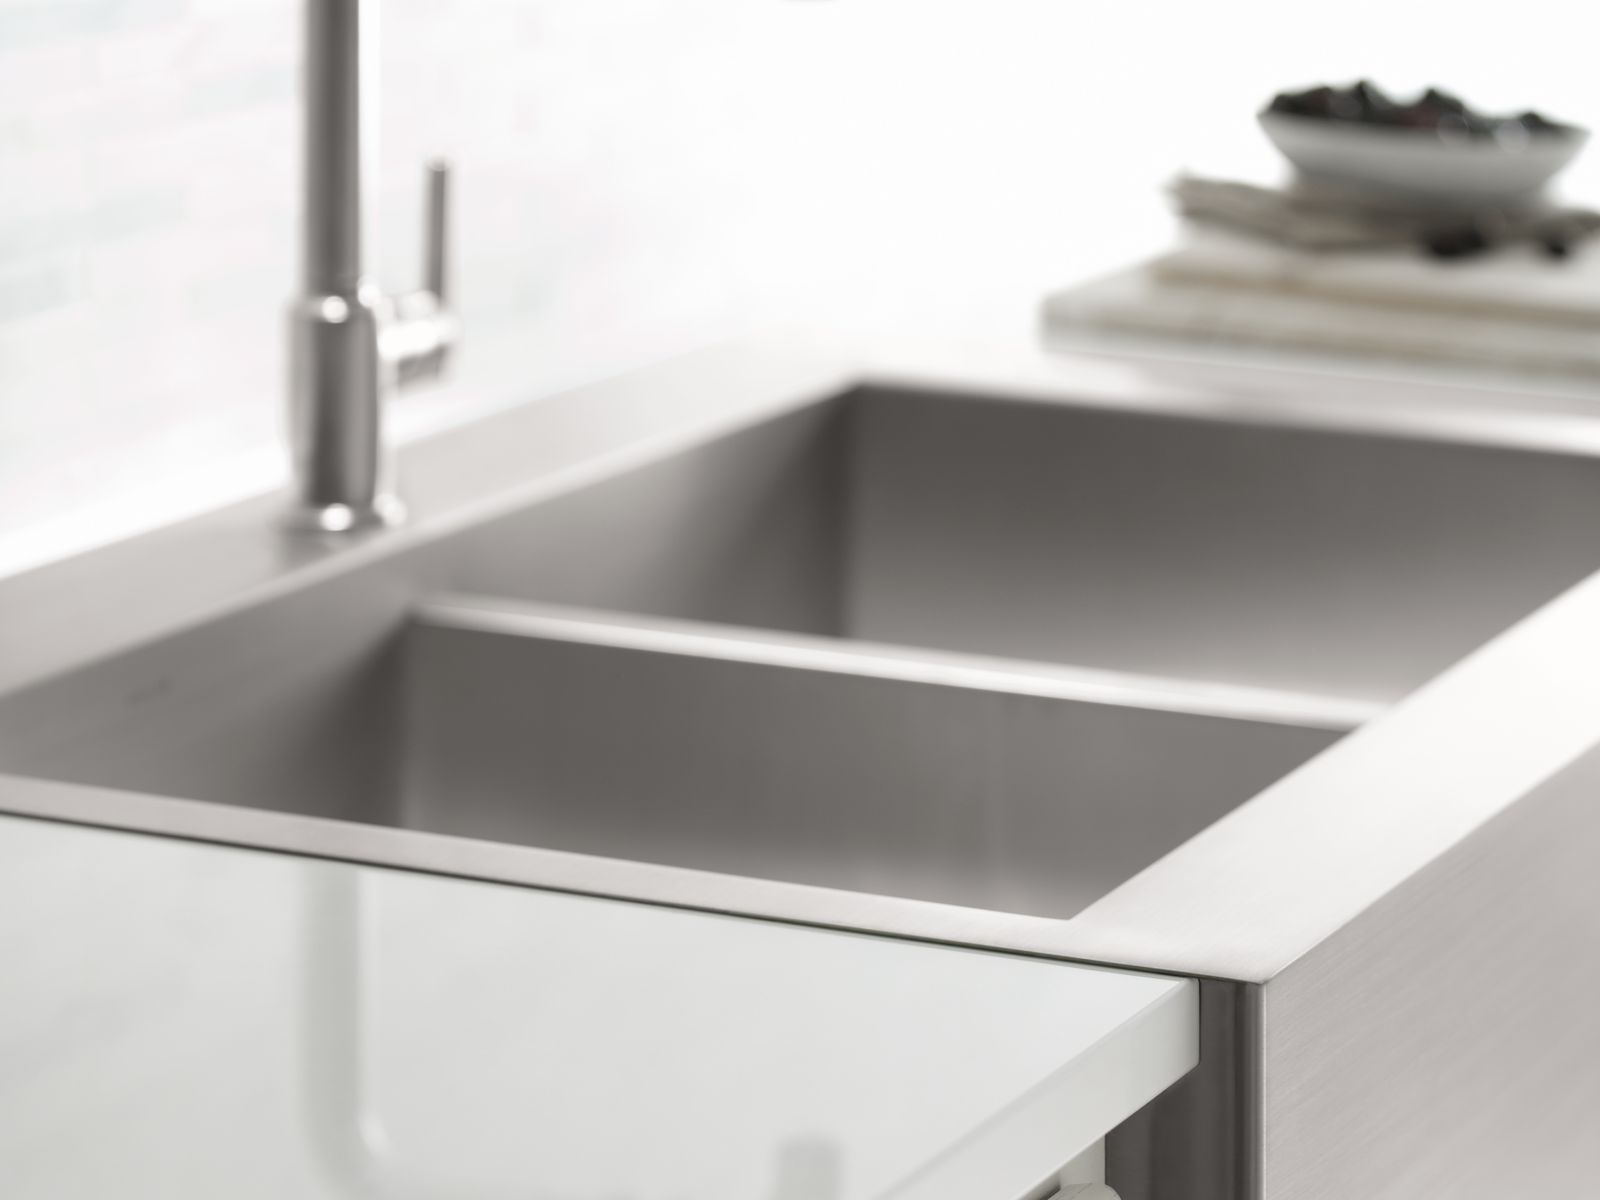 Ideas, stainless steel farmhouse sink with faucet holes stainless steel farmhouse sink with faucet holes available from stock the new single bowl geog kitchen sink from 1600 x 1200  .